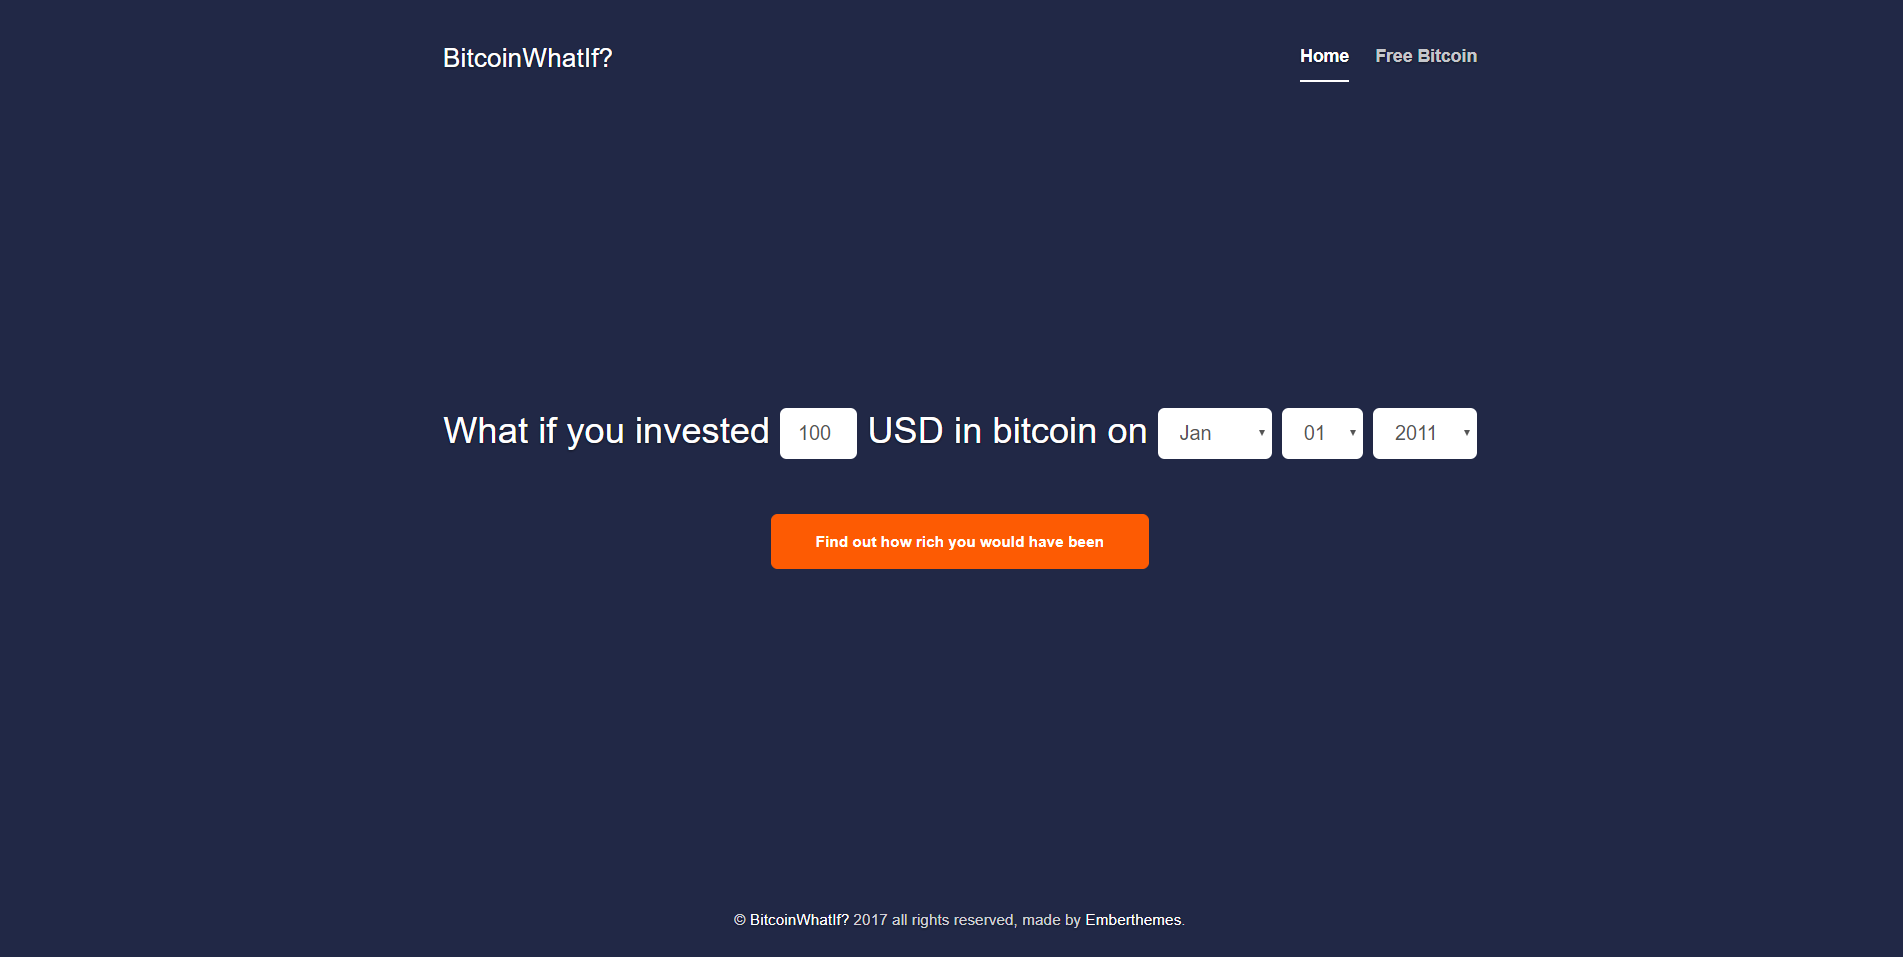 Bitcoin What If? - Historic Investment Calculator